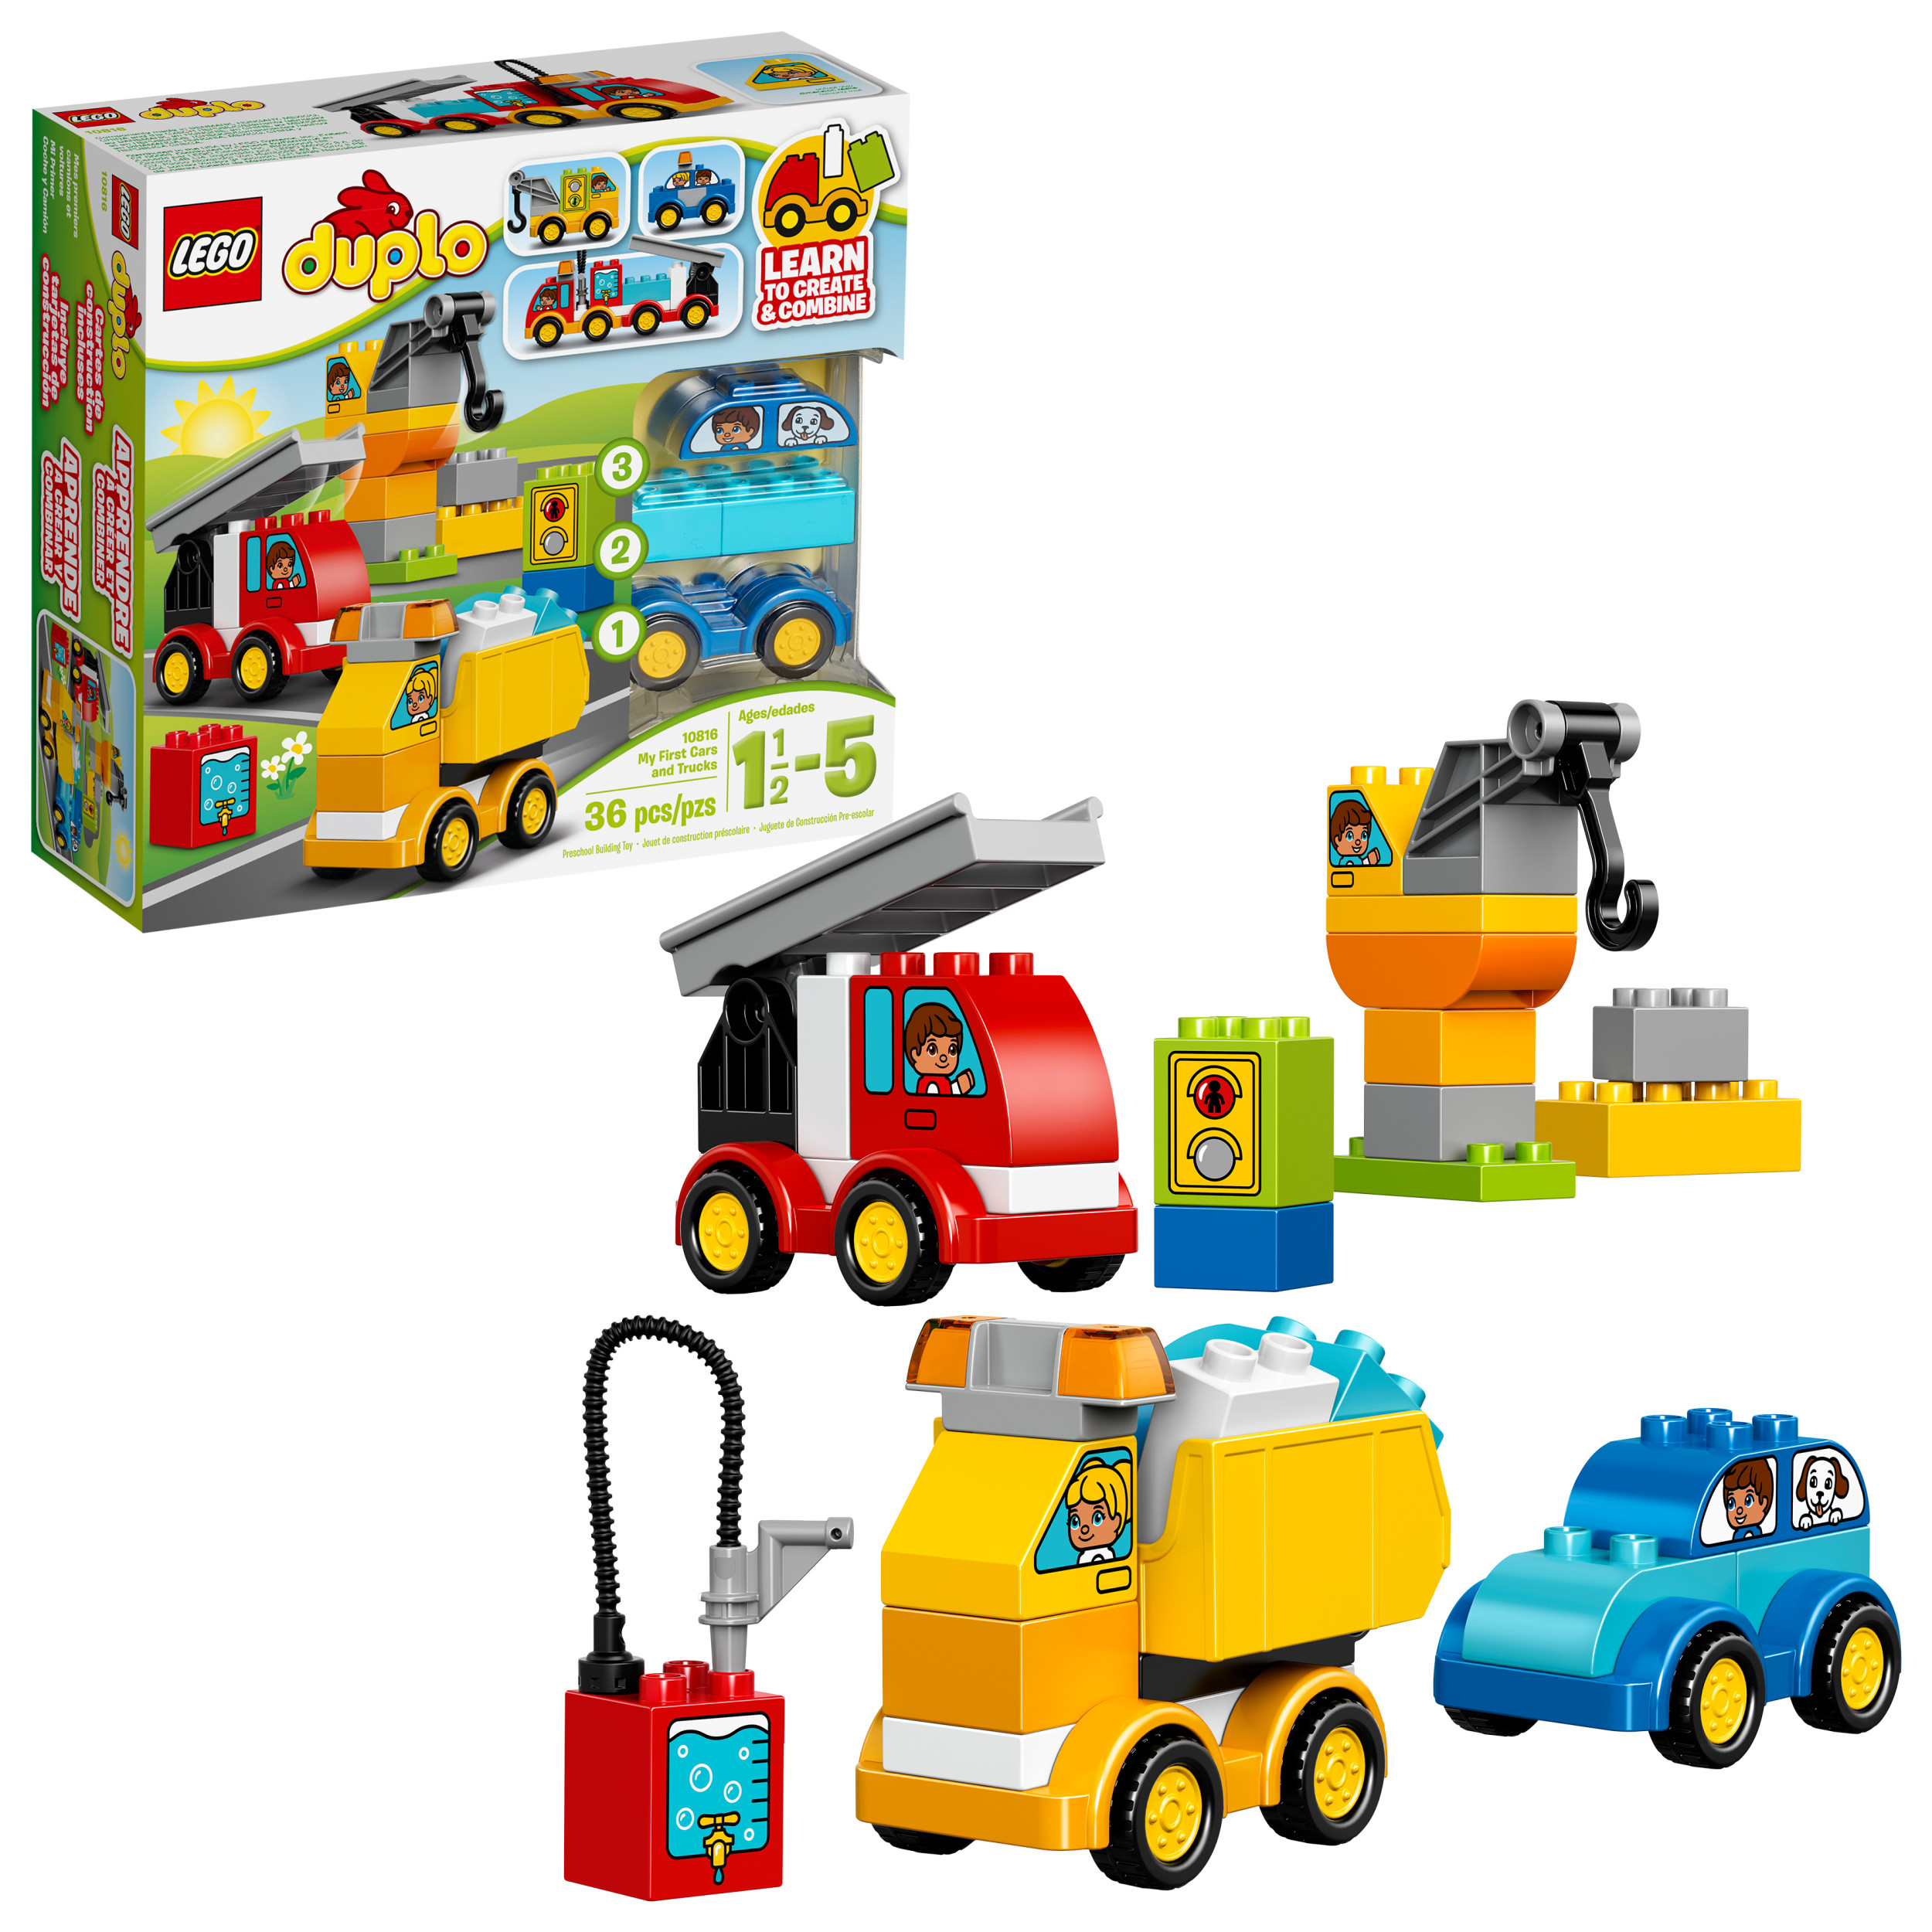 LEGO DUPLO My First Cars and Trucks, 10816